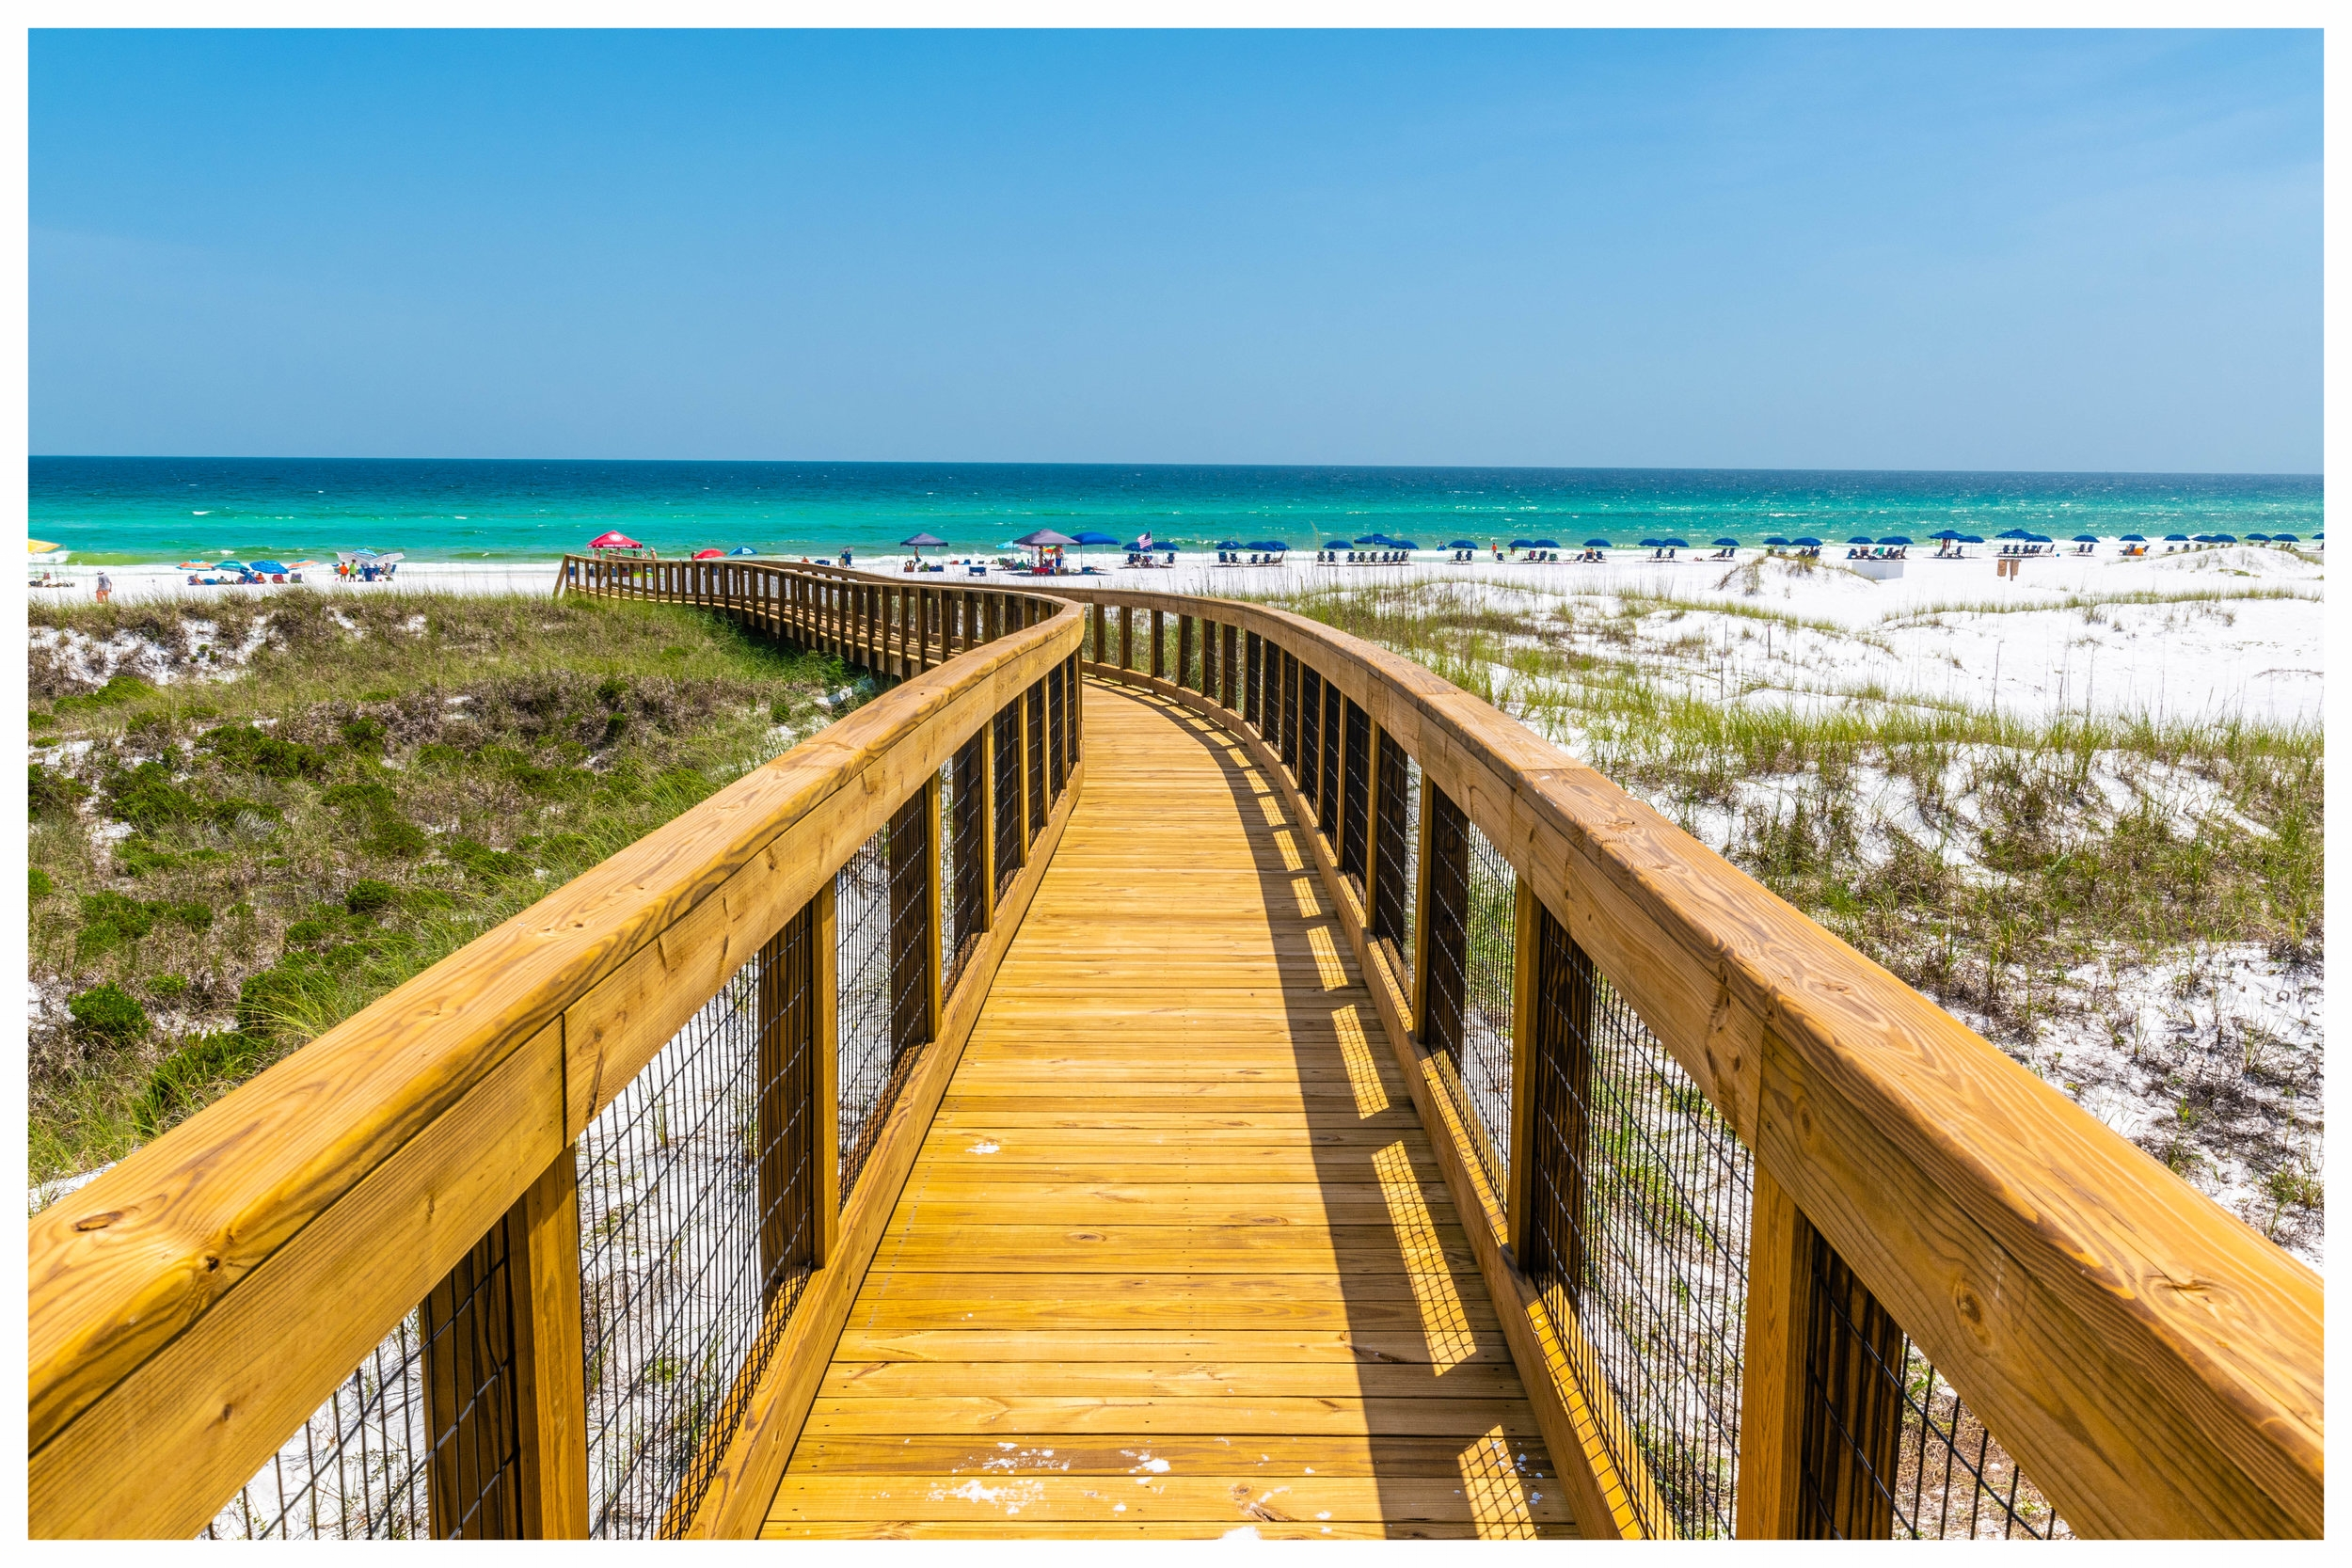 Beach Access Design and Construction